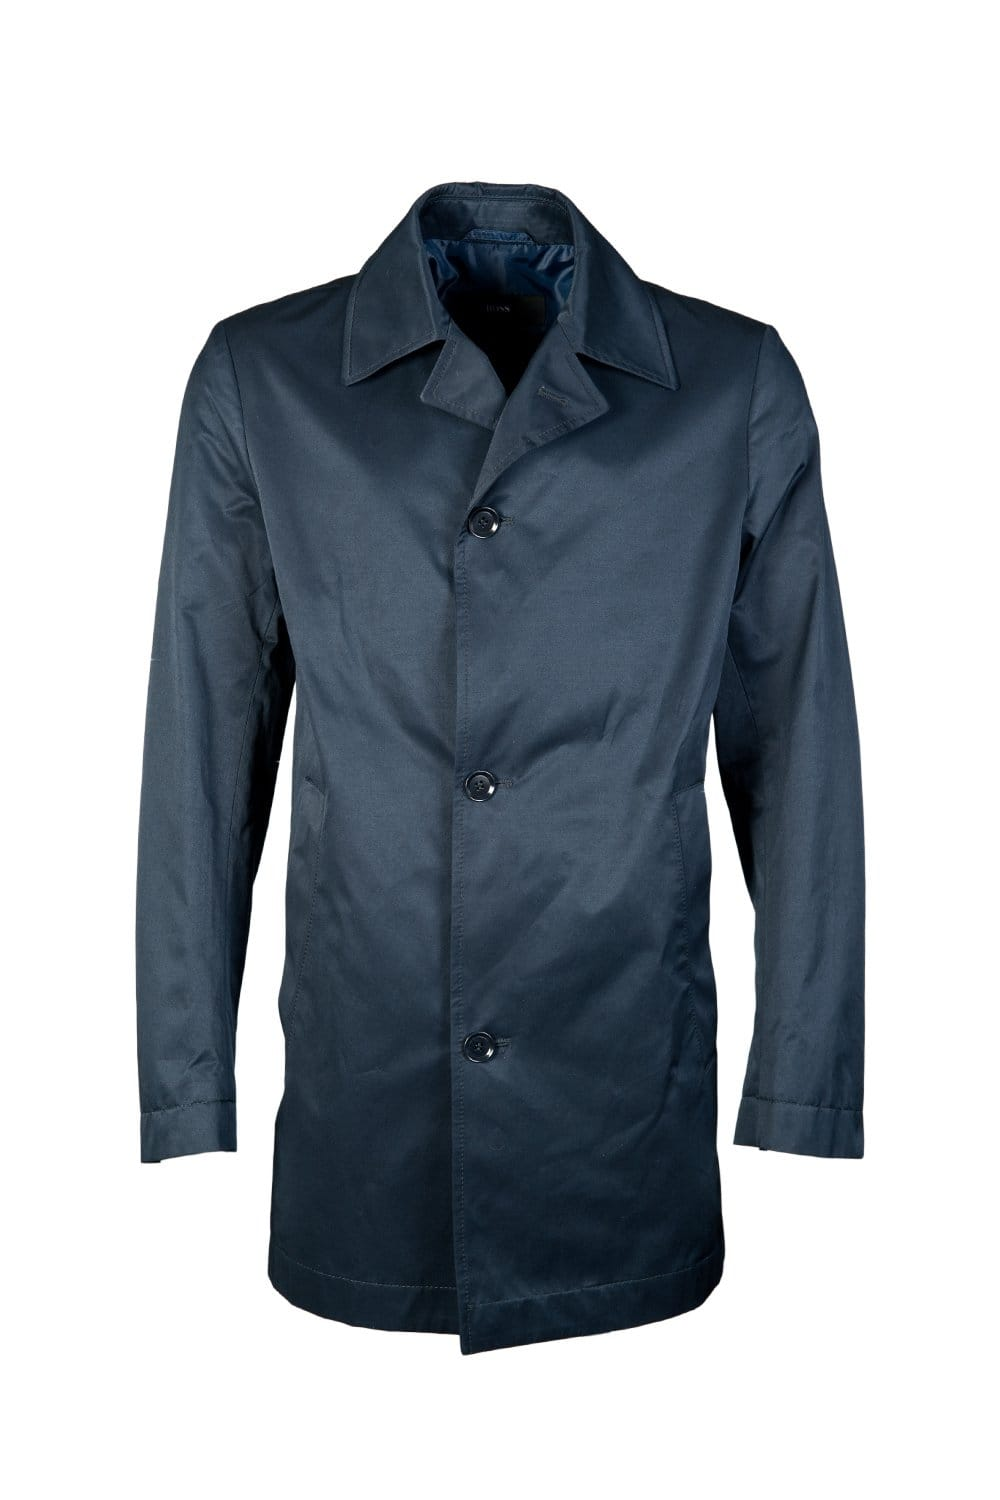 hugo boss black water repellent trench coat in navy blue dais1 50261001 clothing from sage. Black Bedroom Furniture Sets. Home Design Ideas